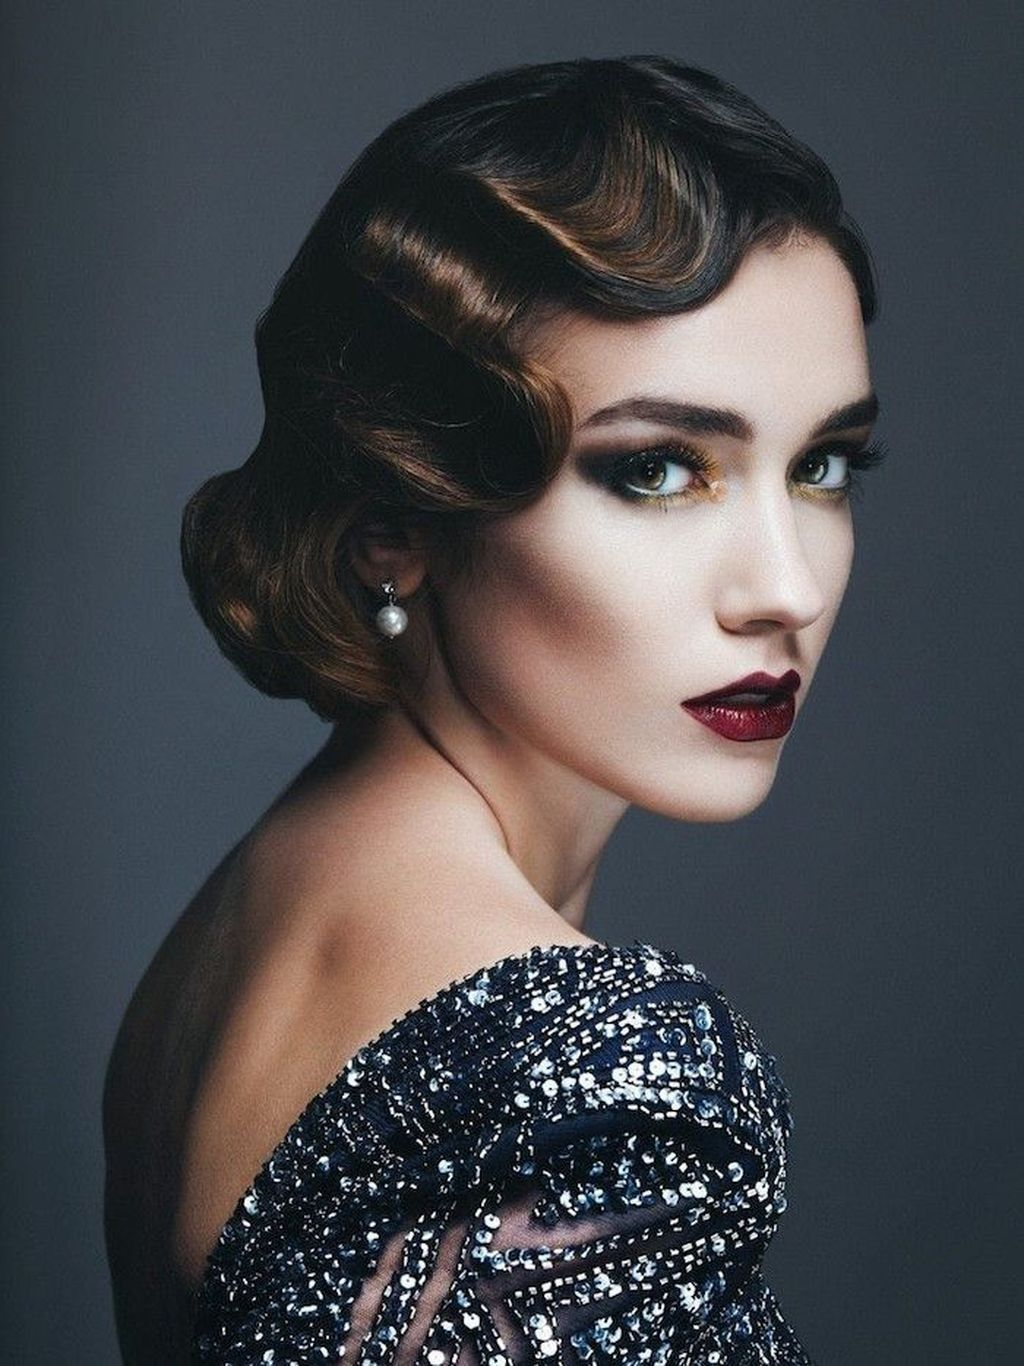 44 Latest Gatsby Hairstyles Ideas For Short Hair Addicfashion Flapper Hair Gatsby Hair Hair Waves